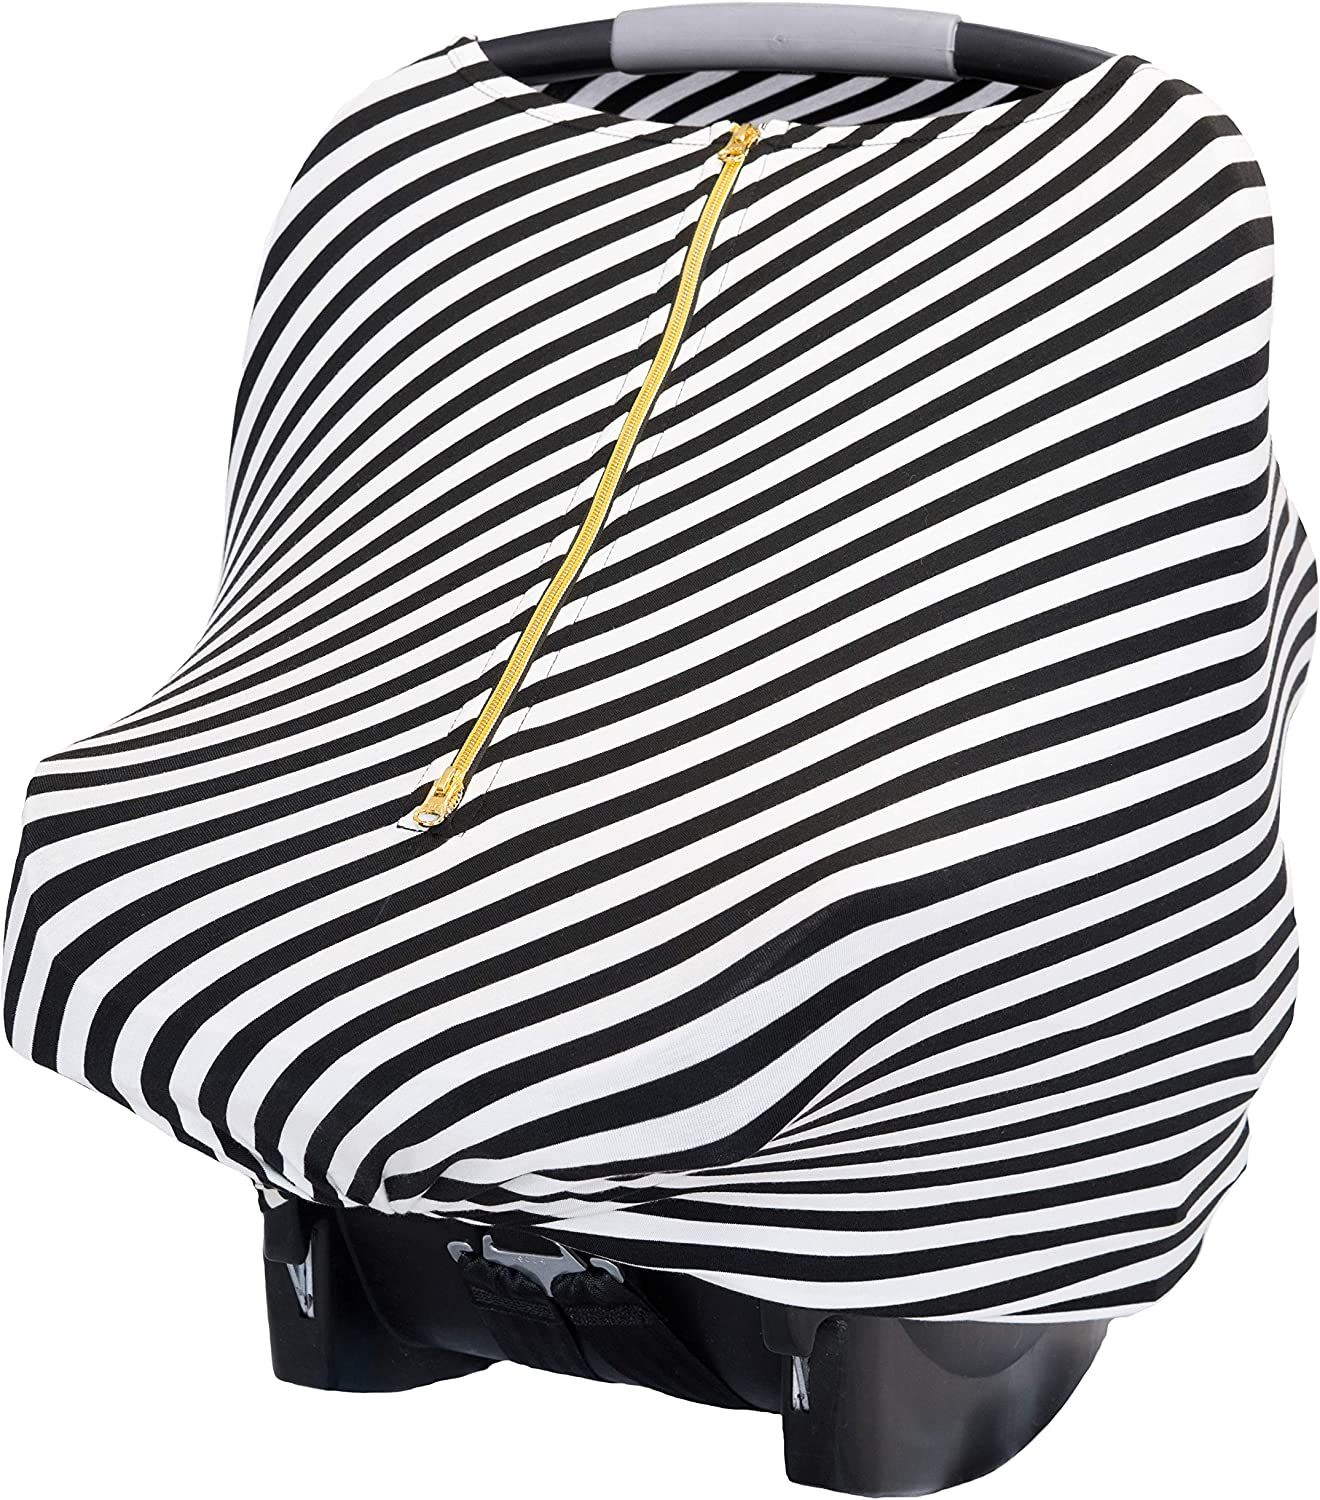 Best Gifts Aprince Baby Car Seat Cover Nursing Cover Breastfeeding Cover Soft Stretchy Multi-Use Cover for Nursing Baby Car Seat Stroller Scarf and Shopping Cart